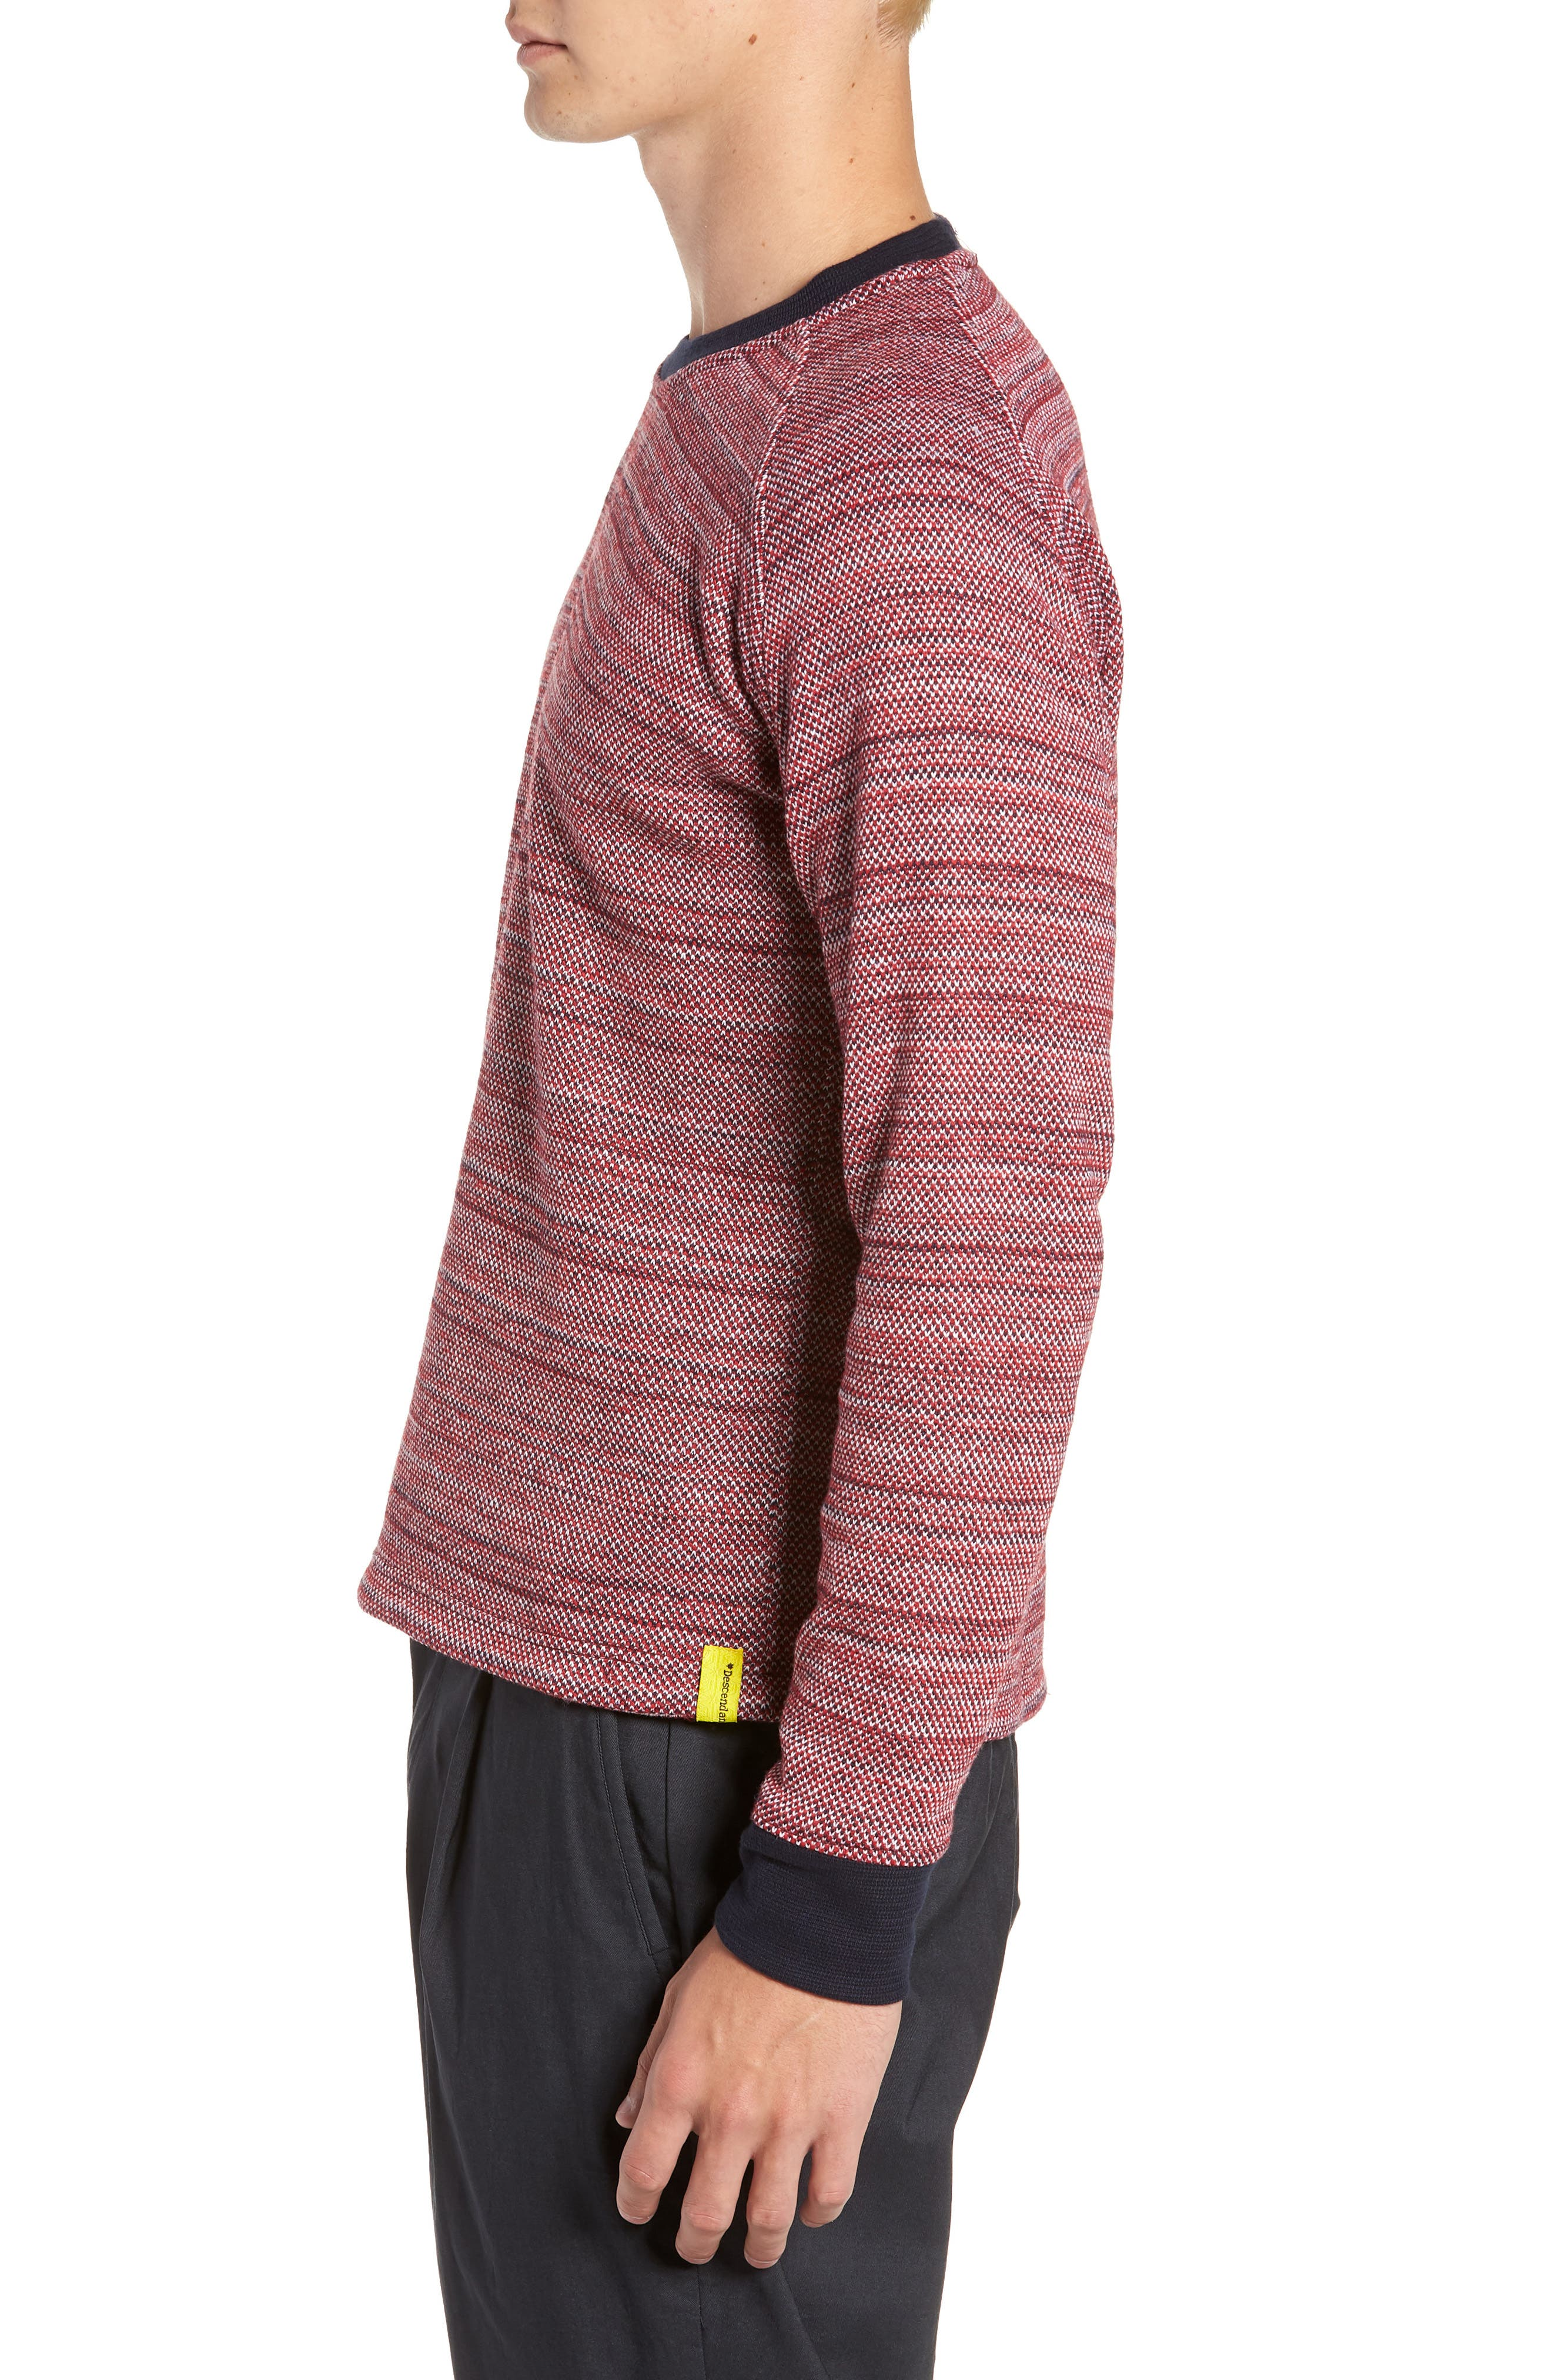 Inside Out Sweater,                             Alternate thumbnail 3, color,                             RED